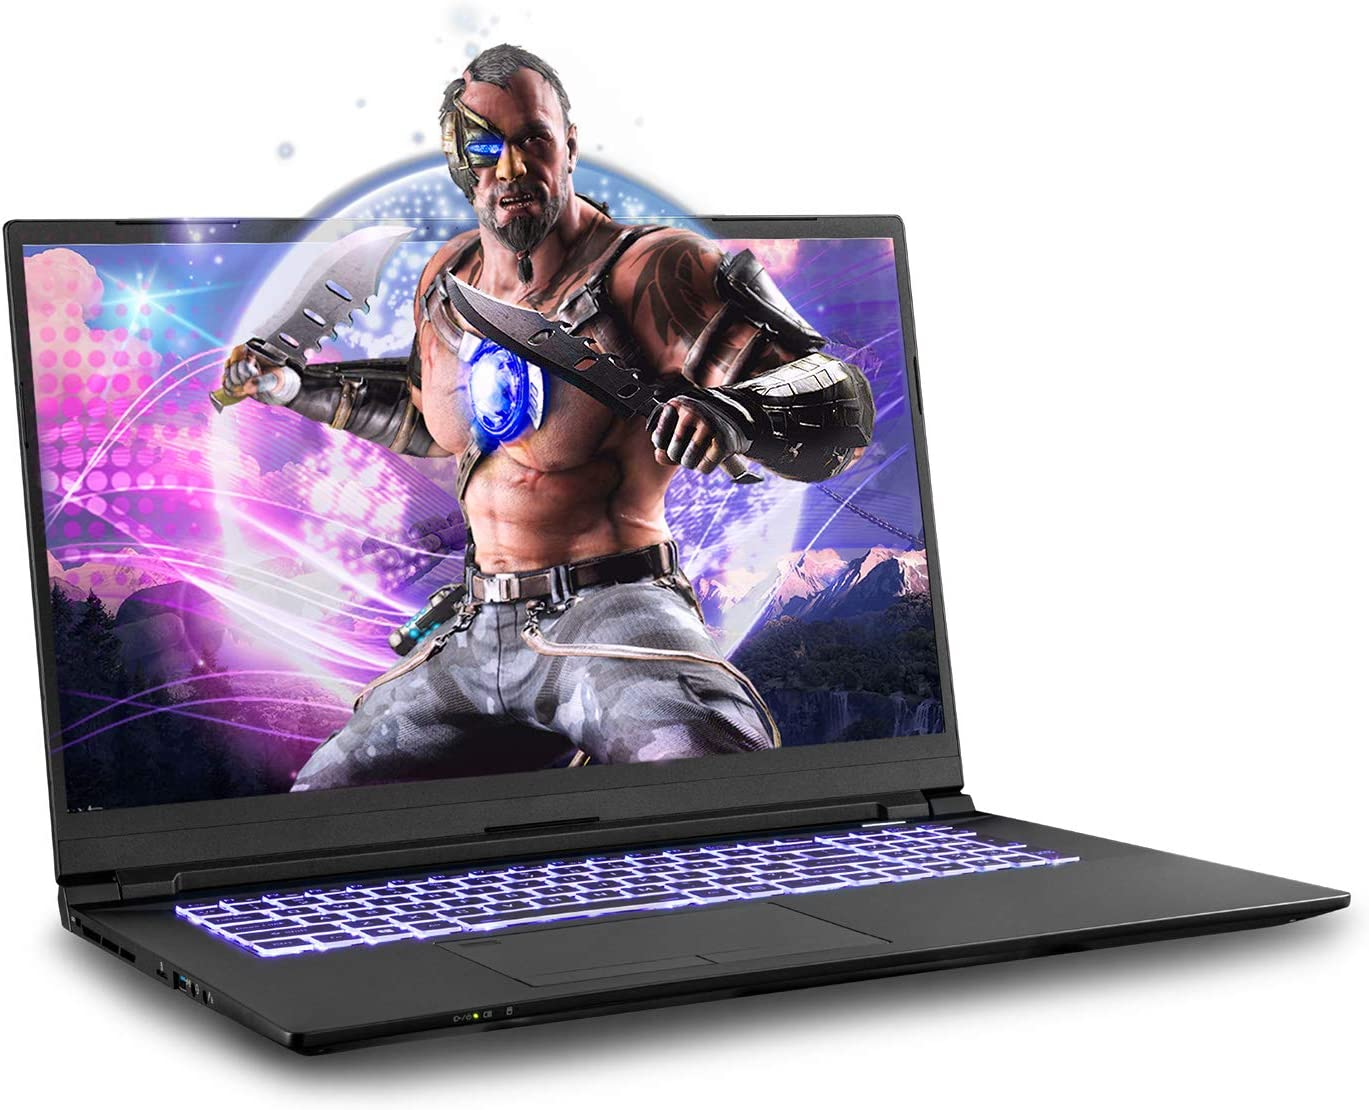 Sager NP8770F1 0.78-Inch Thin, 17.3-Inch FHD 144Hz Gaming Laptop, Intel i7-10875H, RTX 2070, 16GB 3200 RAM, 1TB NVMe SSD, TBT 3, Win 10